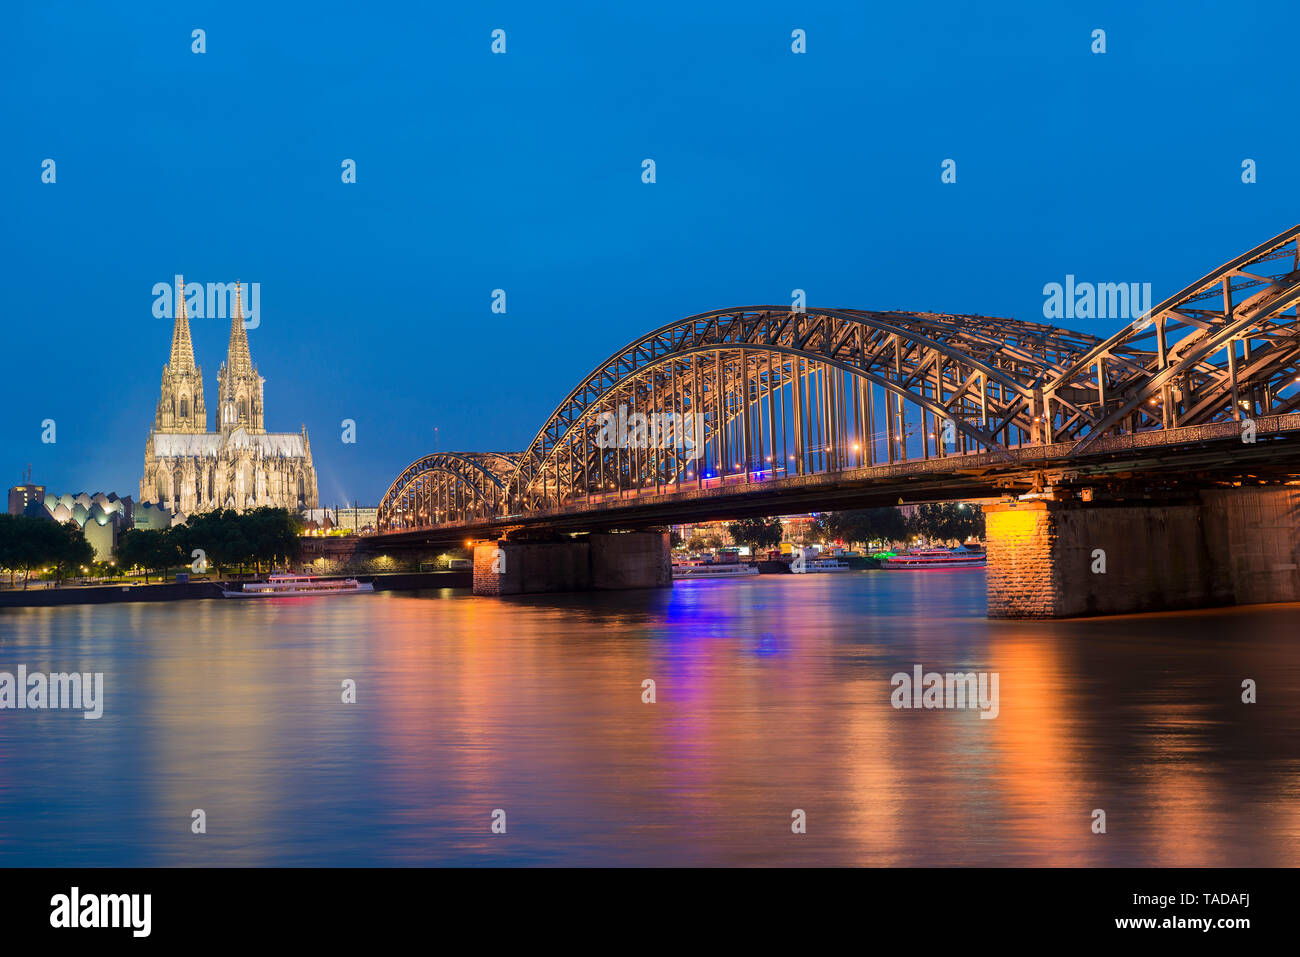 Germany, Cologne, view to Cologne Cathedral with Hohenzollern Bridge and River Rhine in the foreground - Stock Image